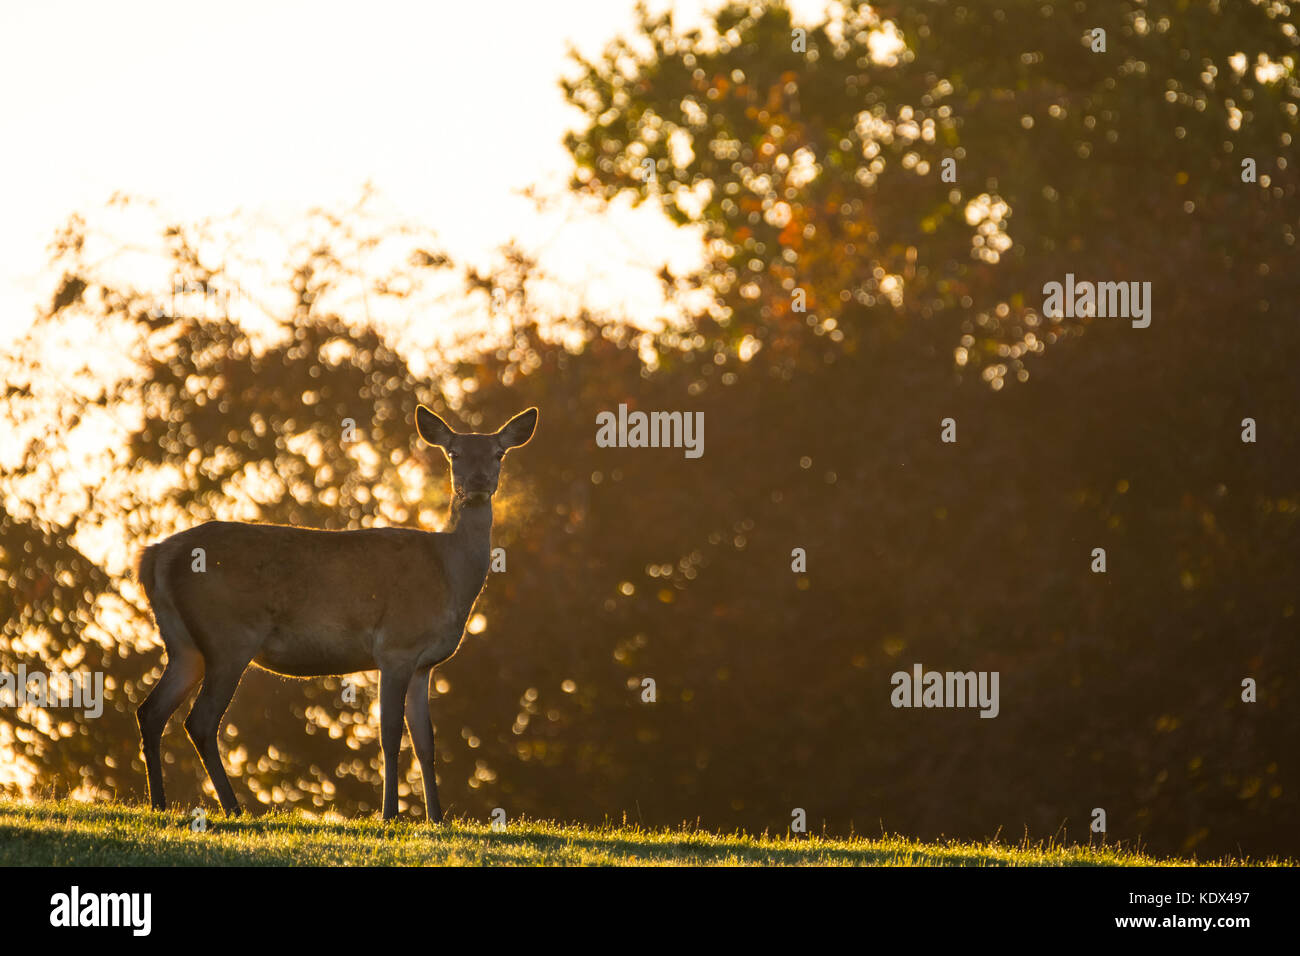 Female Red Deer Backlit with Golden Morning Light - Stock Image